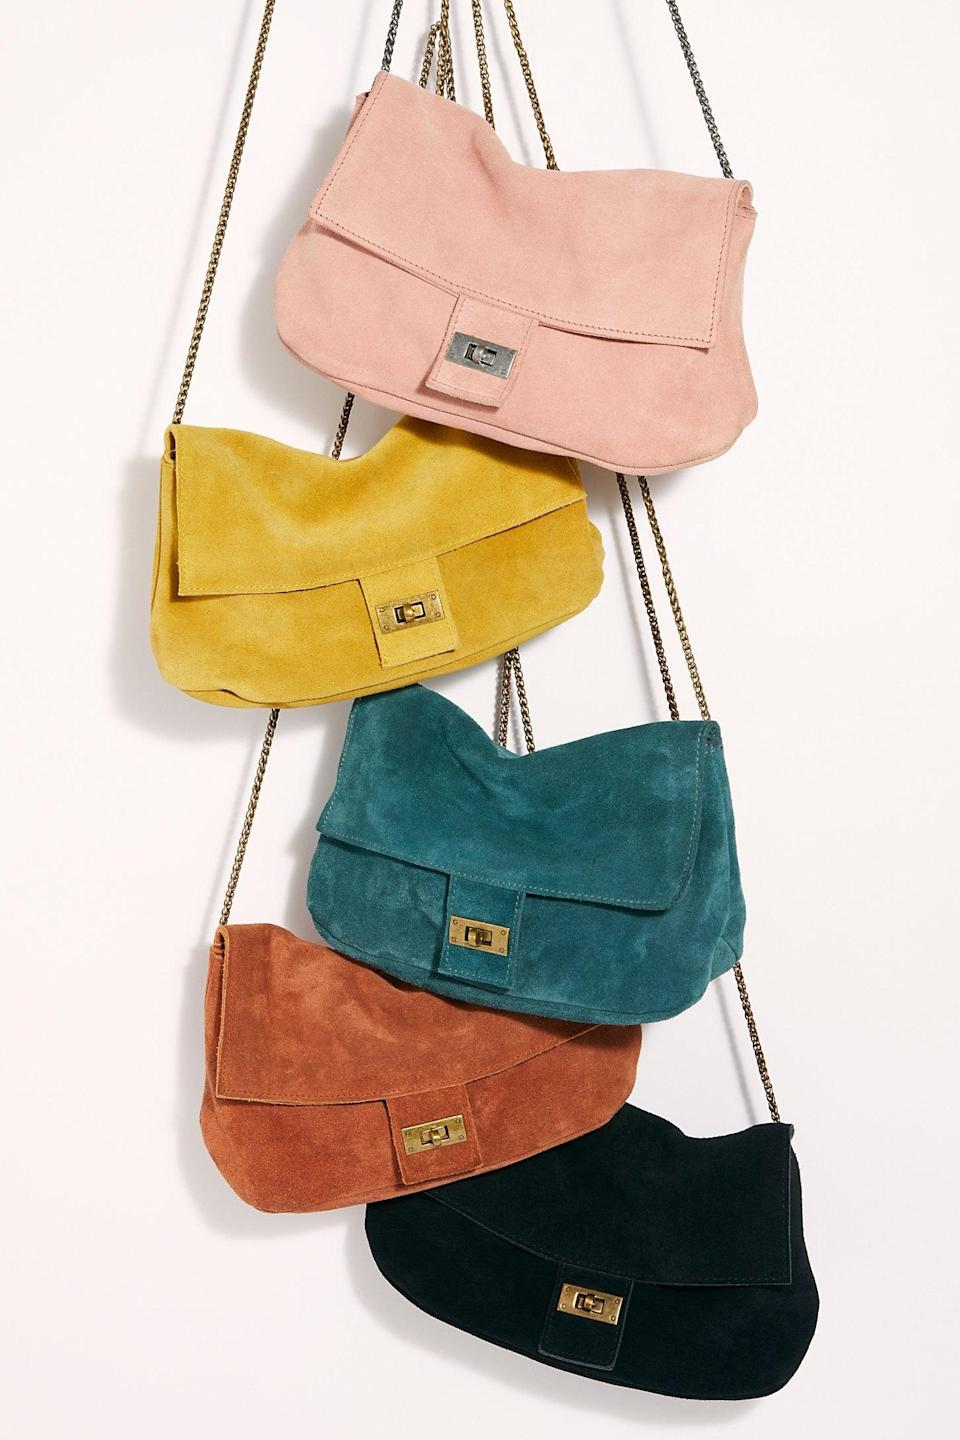 """<p>We want this <a href=""""https://www.popsugar.com/buy/Slouchy-Suede-Shoulder-Bag-527151?p_name=Slouchy%20Suede%20Shoulder%20Bag&retailer=freepeople.com&pid=527151&price=58&evar1=fab%3Aus&evar9=45460327&evar98=https%3A%2F%2Fwww.popsugar.com%2Ffashion%2Fphoto-gallery%2F45460327%2Fimage%2F46978001%2FSlouchy-Suede-Shoulder-Bag&list1=shopping%2Cgifts%2Cfree%20people%2Choliday%2Cgift%20guide%2Cgifts%20for%20women&prop13=api&pdata=1"""" class=""""link rapid-noclick-resp"""" rel=""""nofollow noopener"""" target=""""_blank"""" data-ylk=""""slk:Slouchy Suede Shoulder Bag"""">Slouchy Suede Shoulder Bag</a> ($58) in every shade.</p>"""